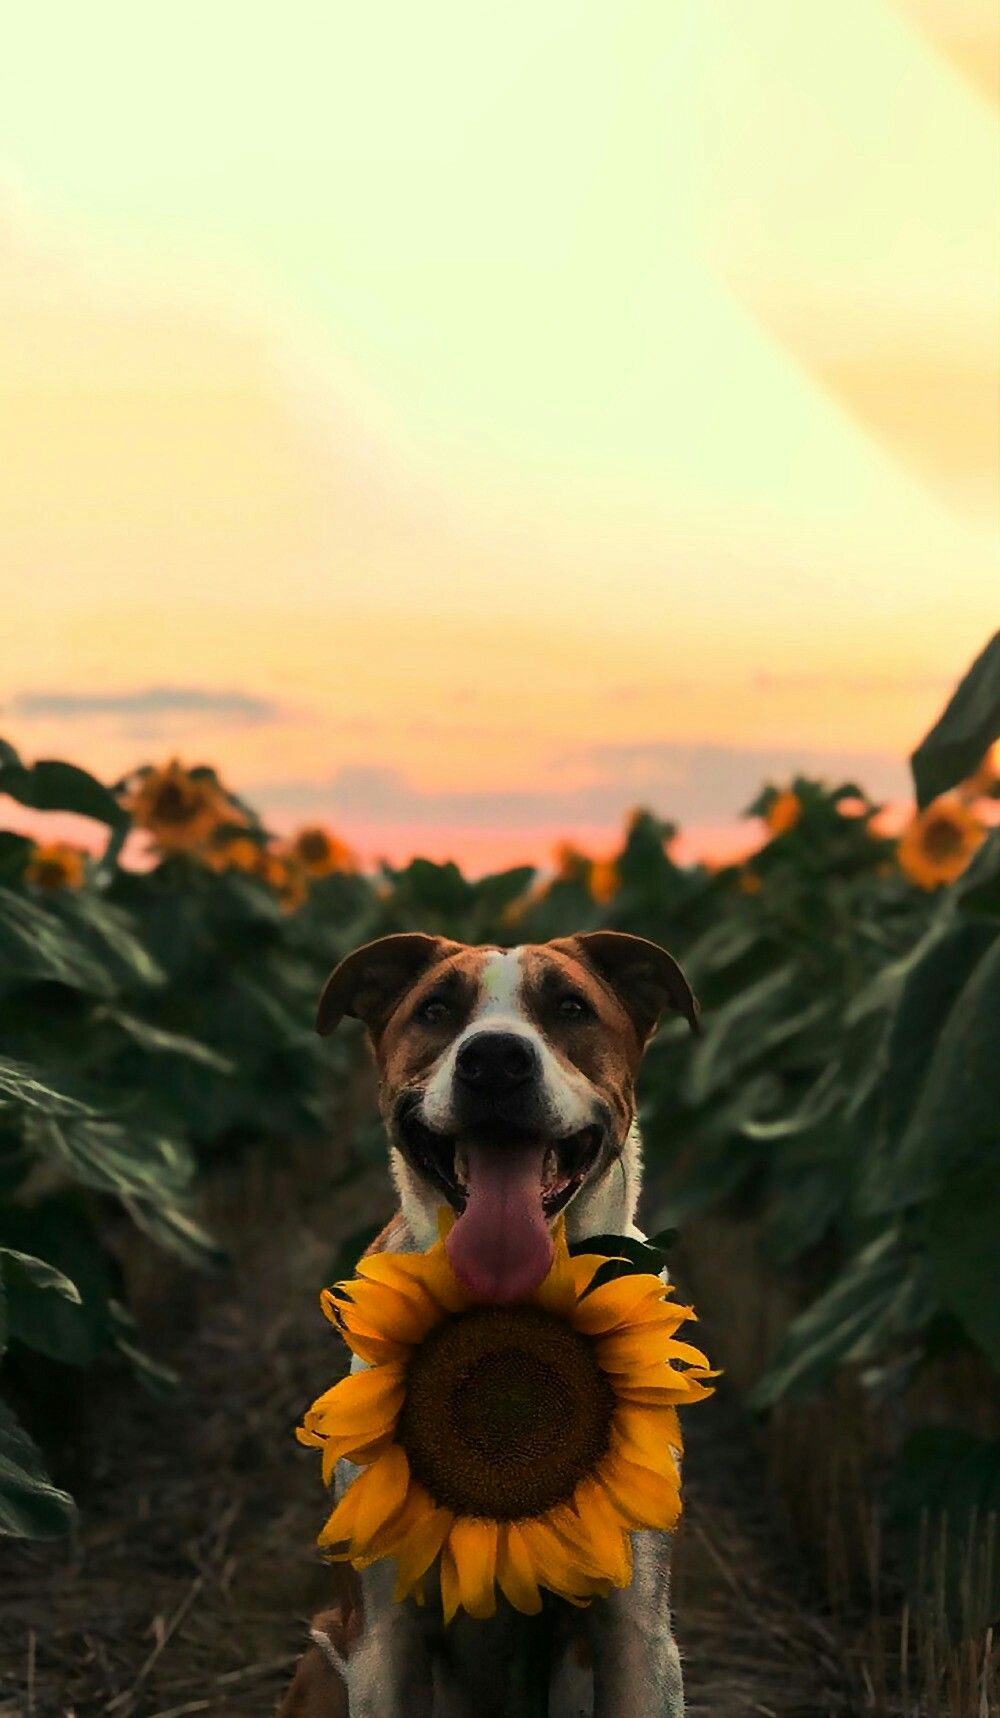 Pin by Rayvyn on PHOTOGRAPHY in 2019 Dog wallpaper